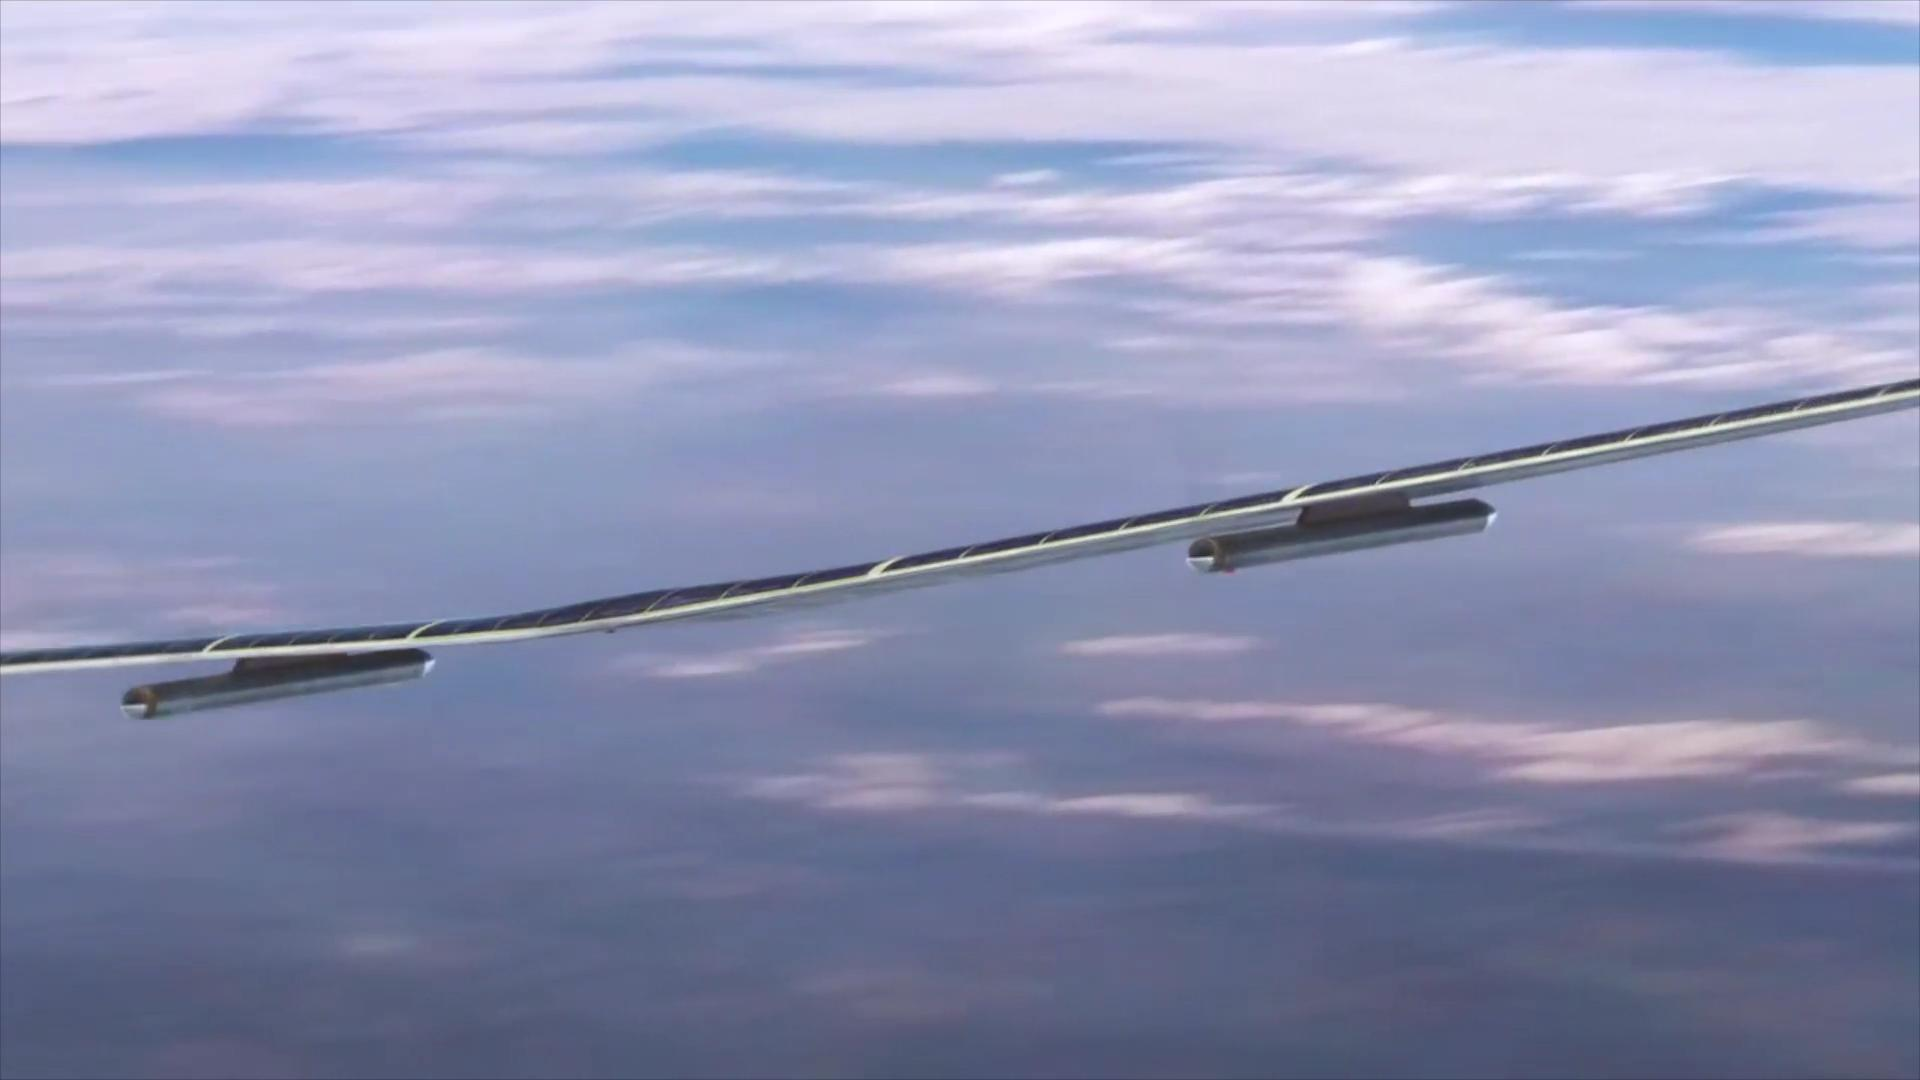 Facebook builds Internet drone to provide access for all